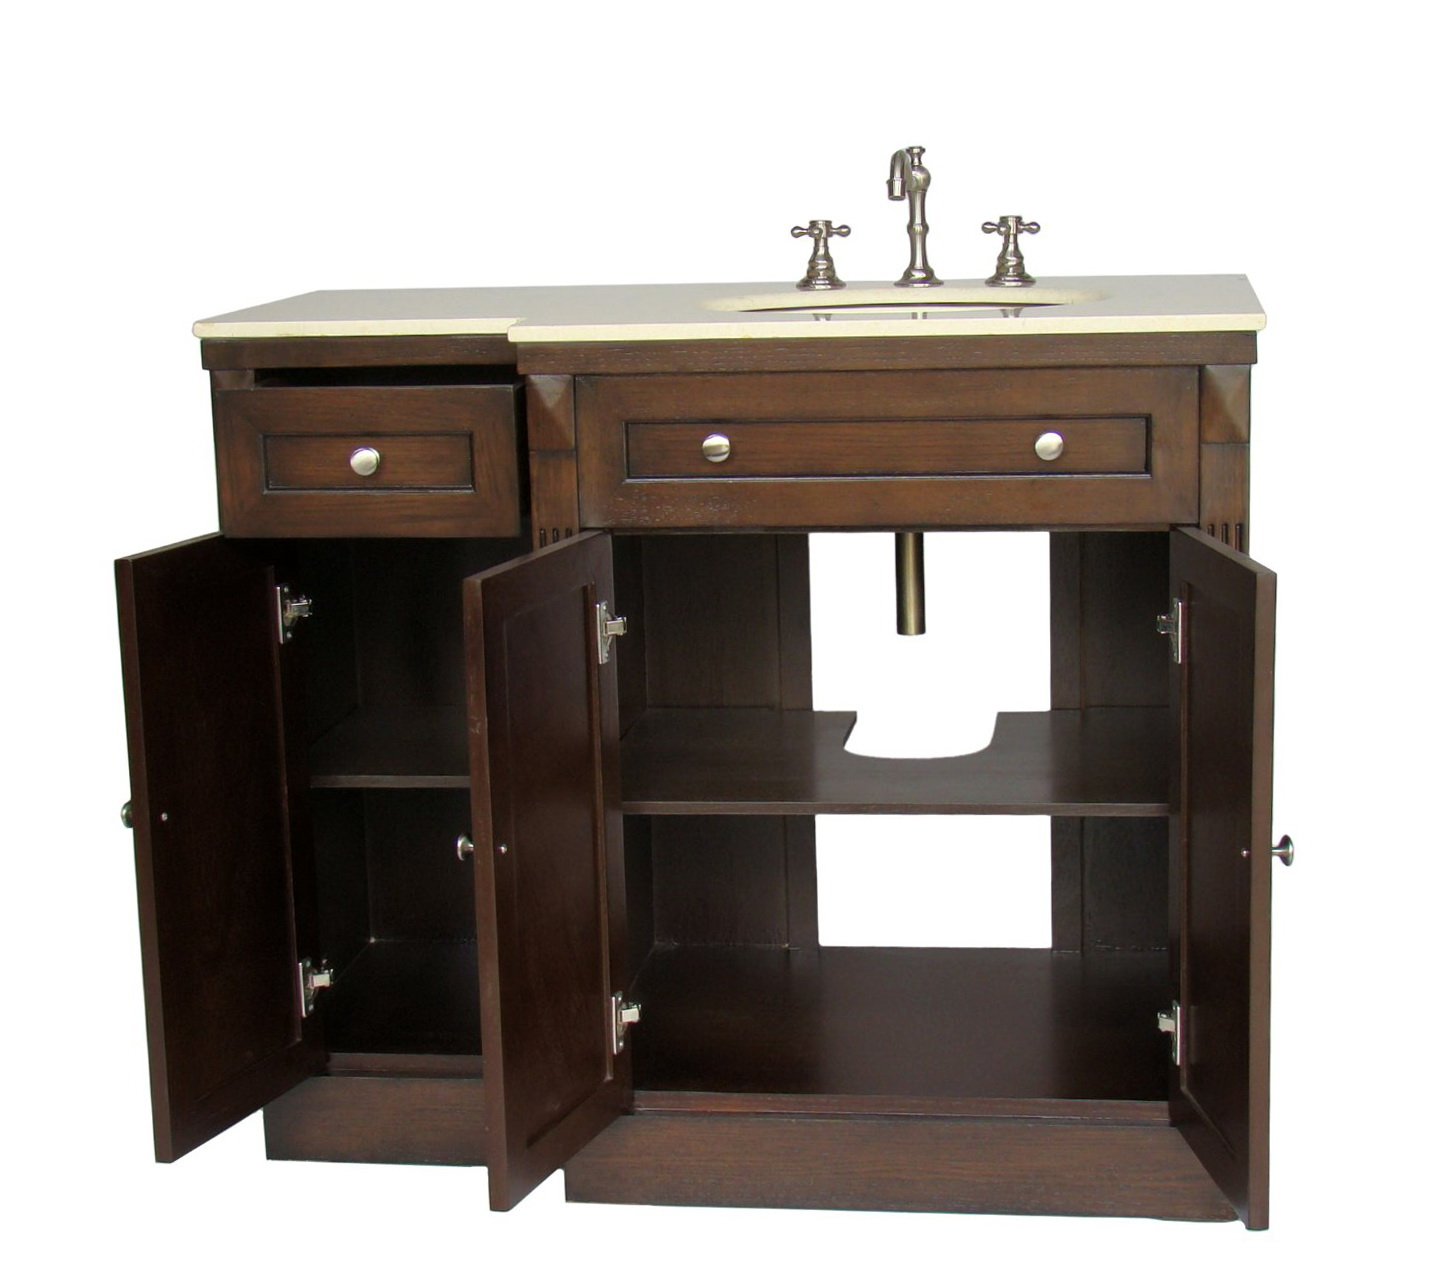 Glamorous 10 Bathroom Vanity No Top Decorating Design Of Vanities Without Tops Bathroom